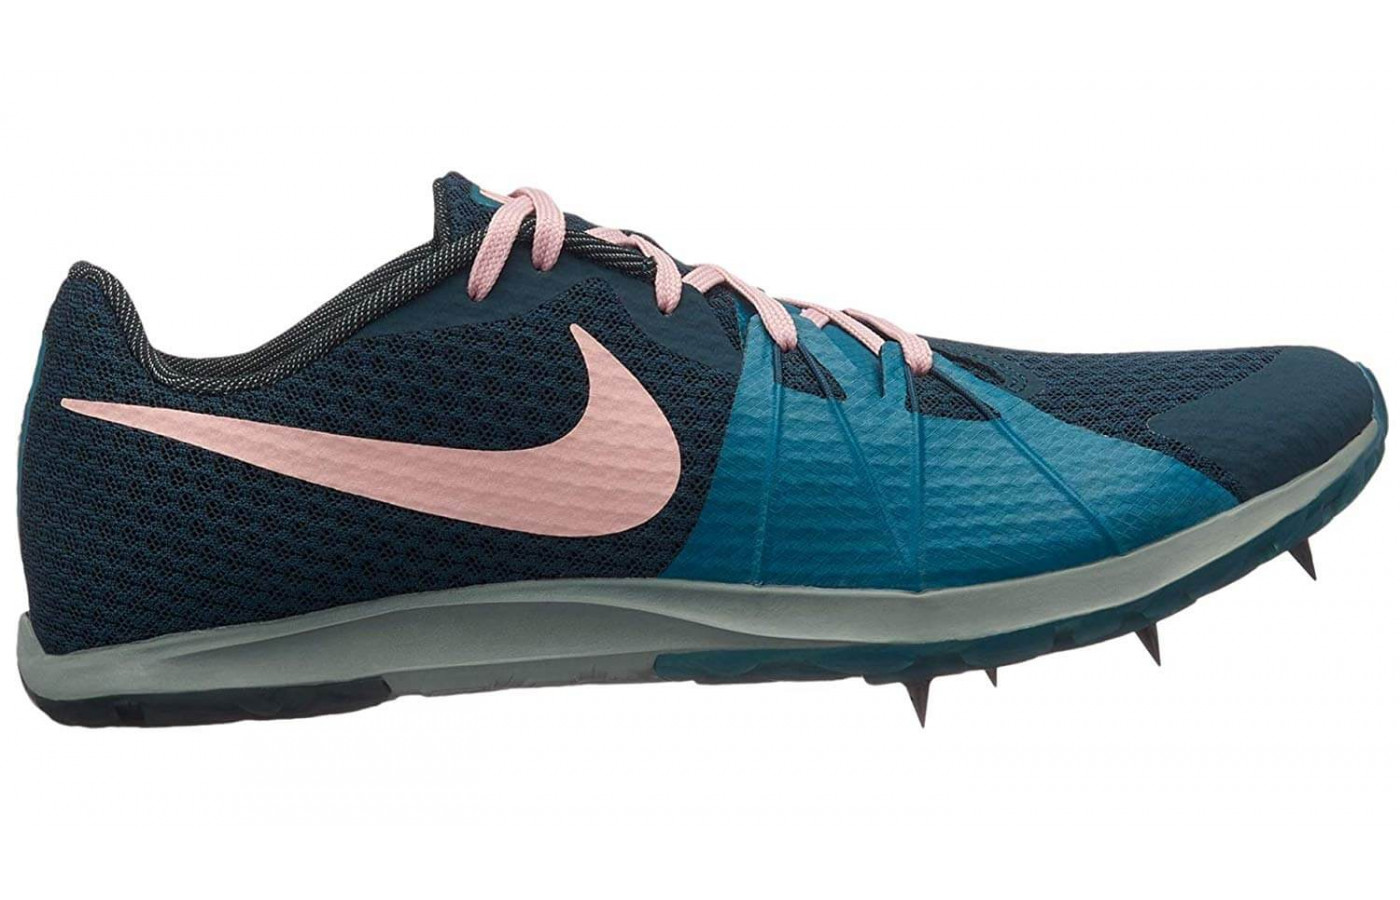 c14e93a5304a41 Nike Zoom Rival XC Reviewed - To Buy or Not in Apr 2019